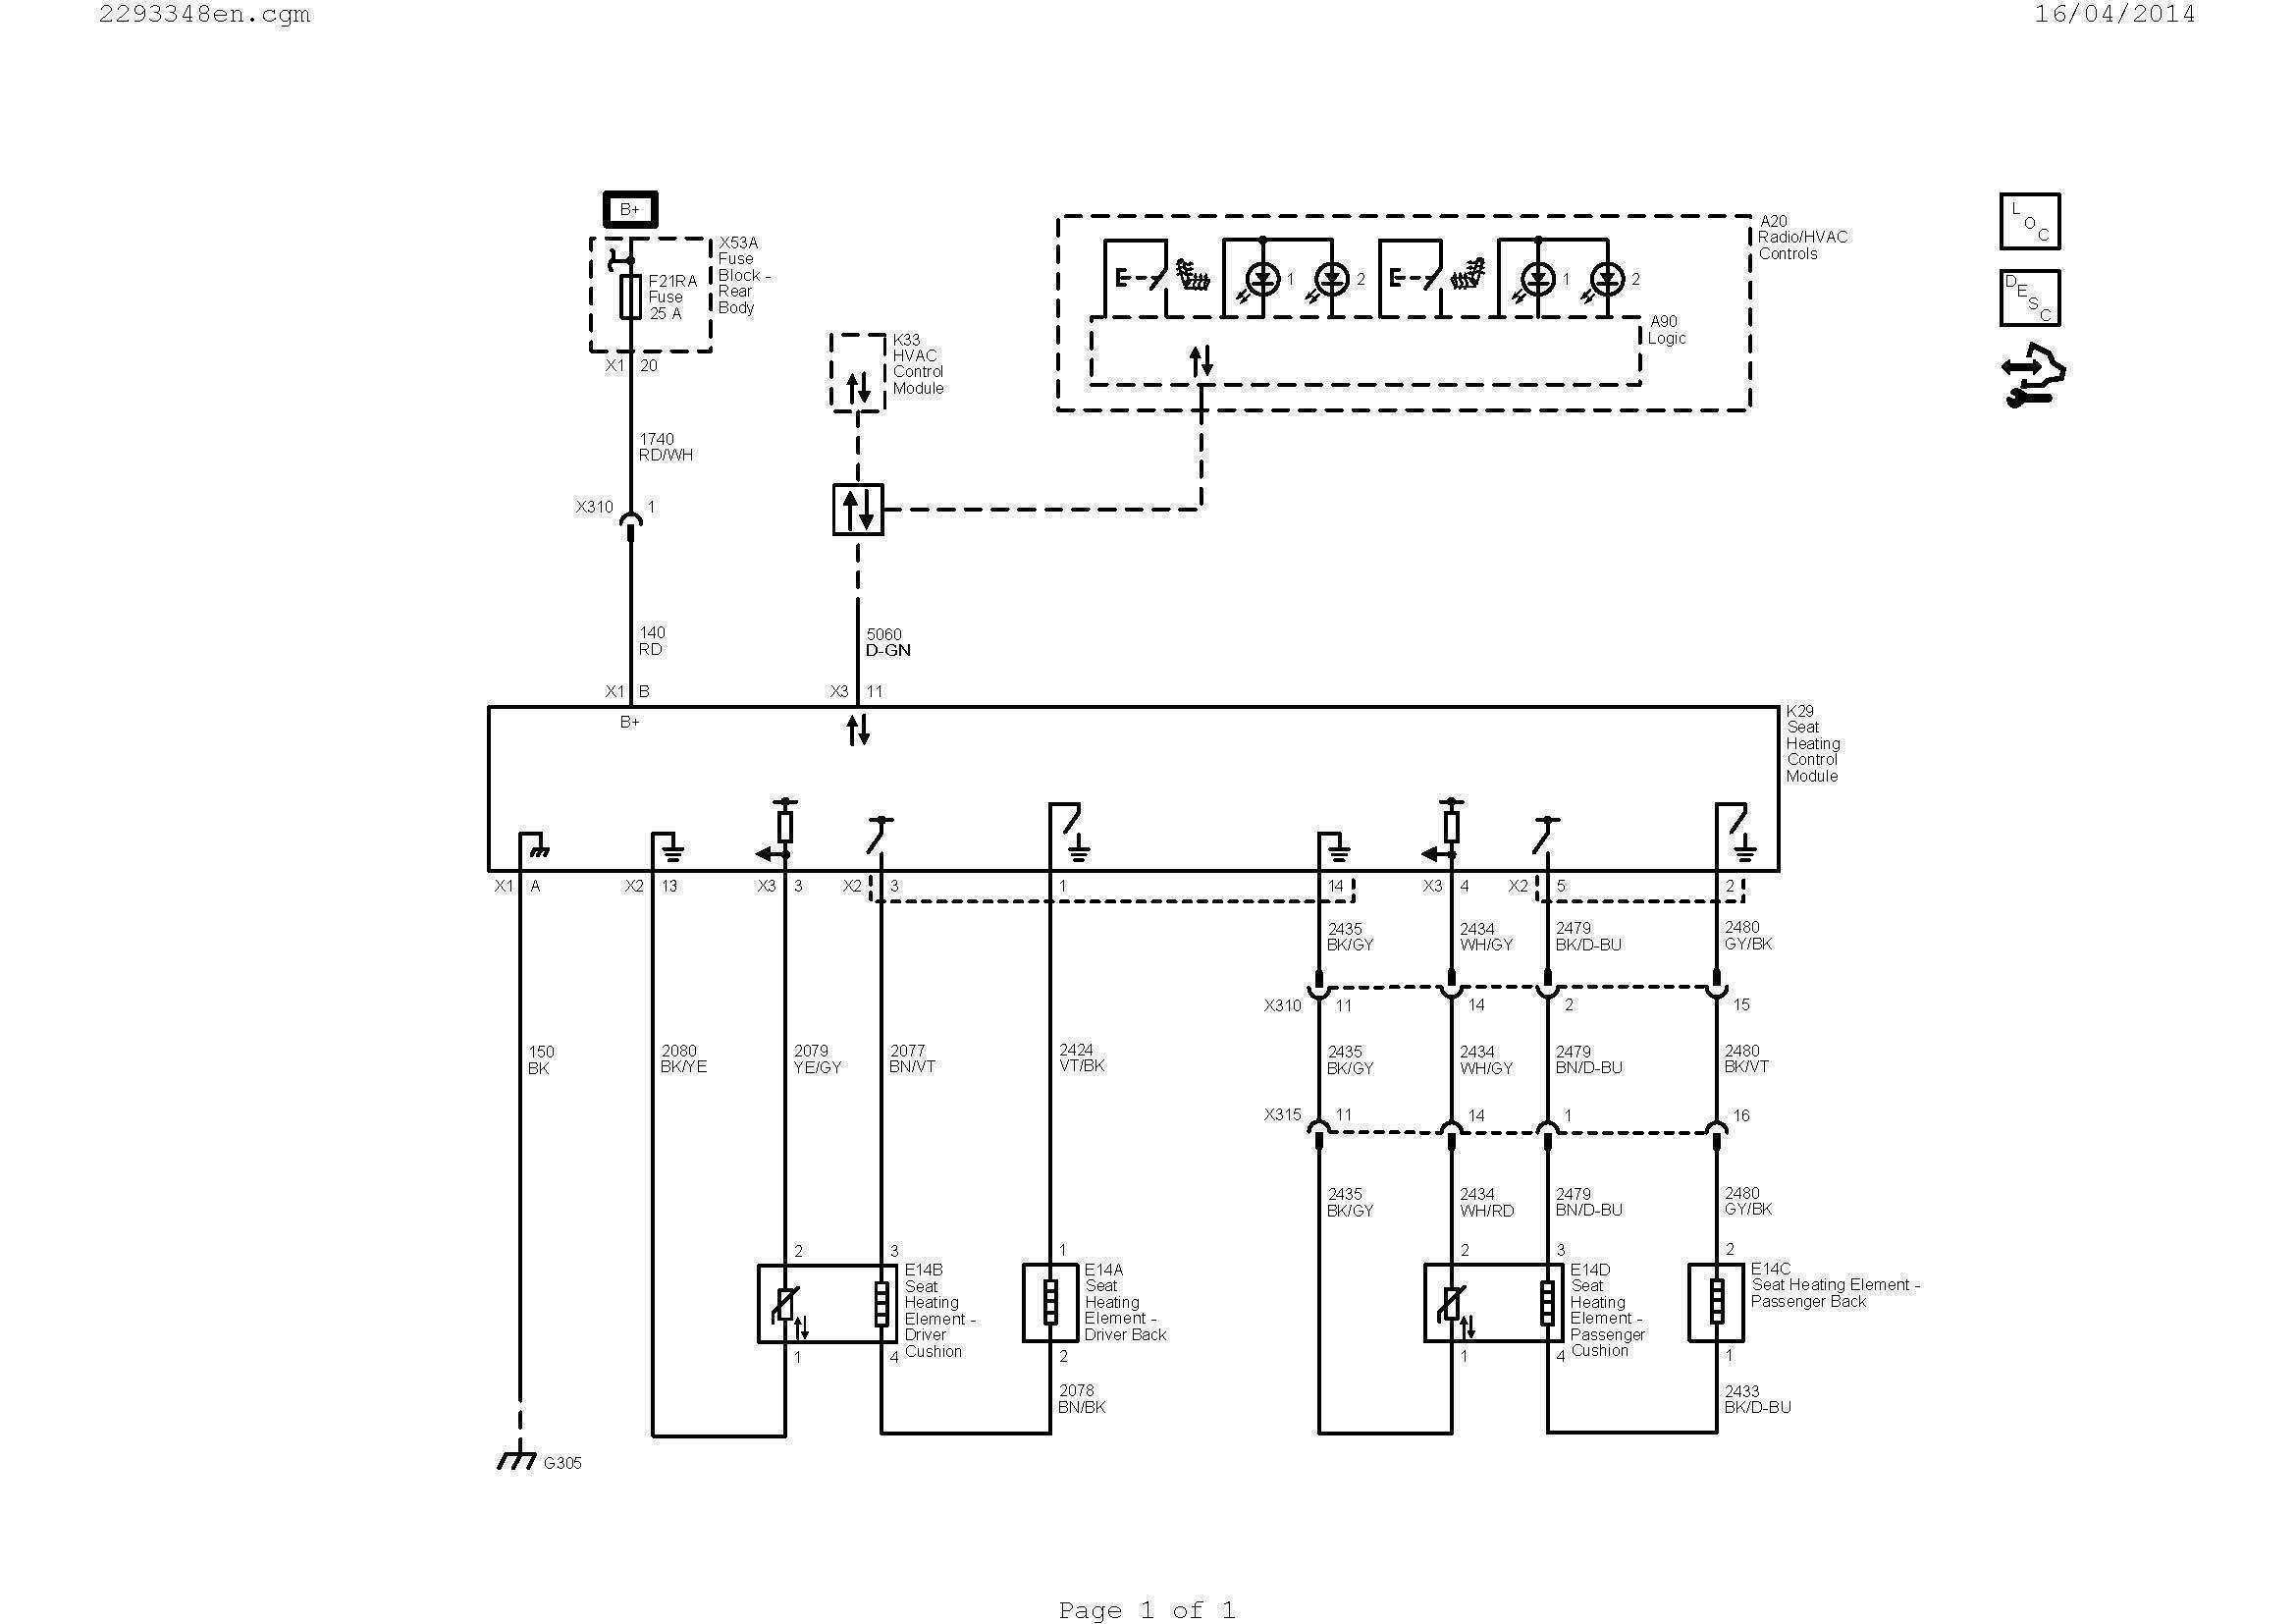 Ac Diagram Car Wrg 1635] Tiller Wiring Diagram Of Ac Diagram Car Free Download Rg570 Wiring Diagram